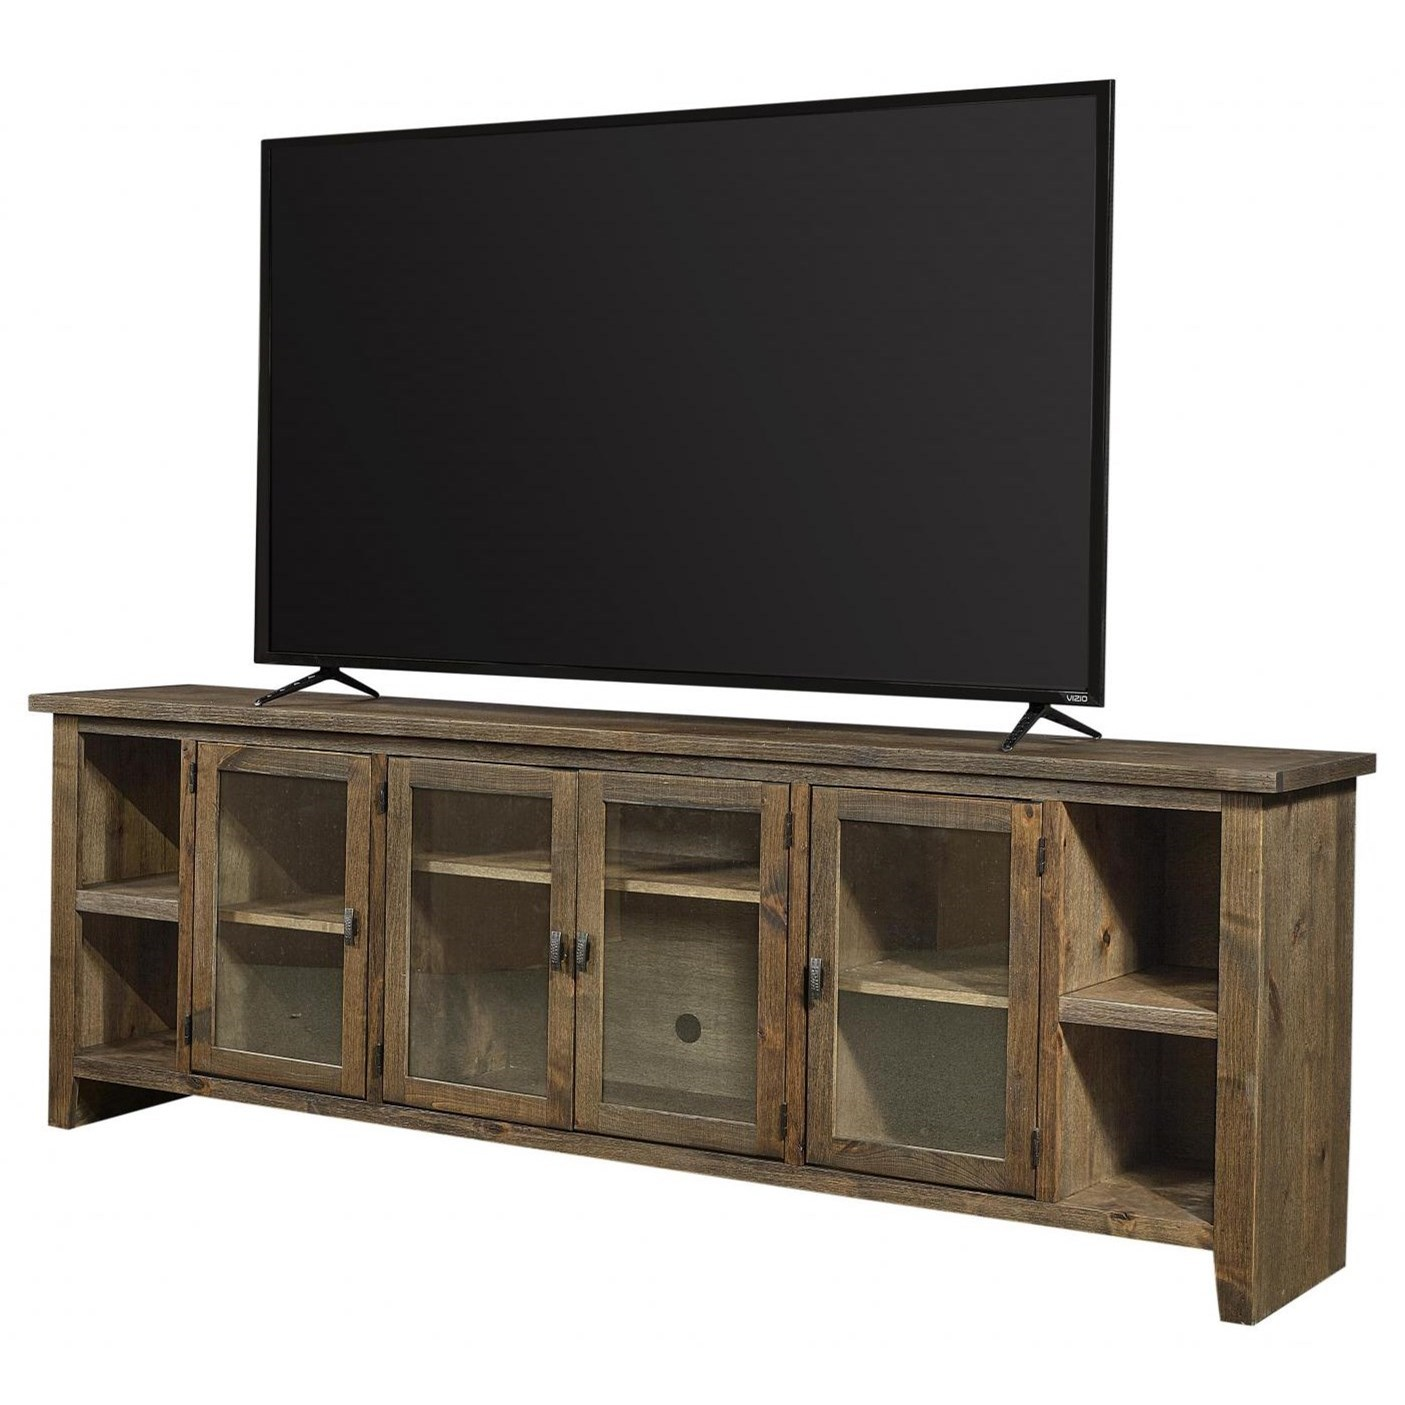 Alder Grove TV Stand by Aspenhome at Baer's Furniture